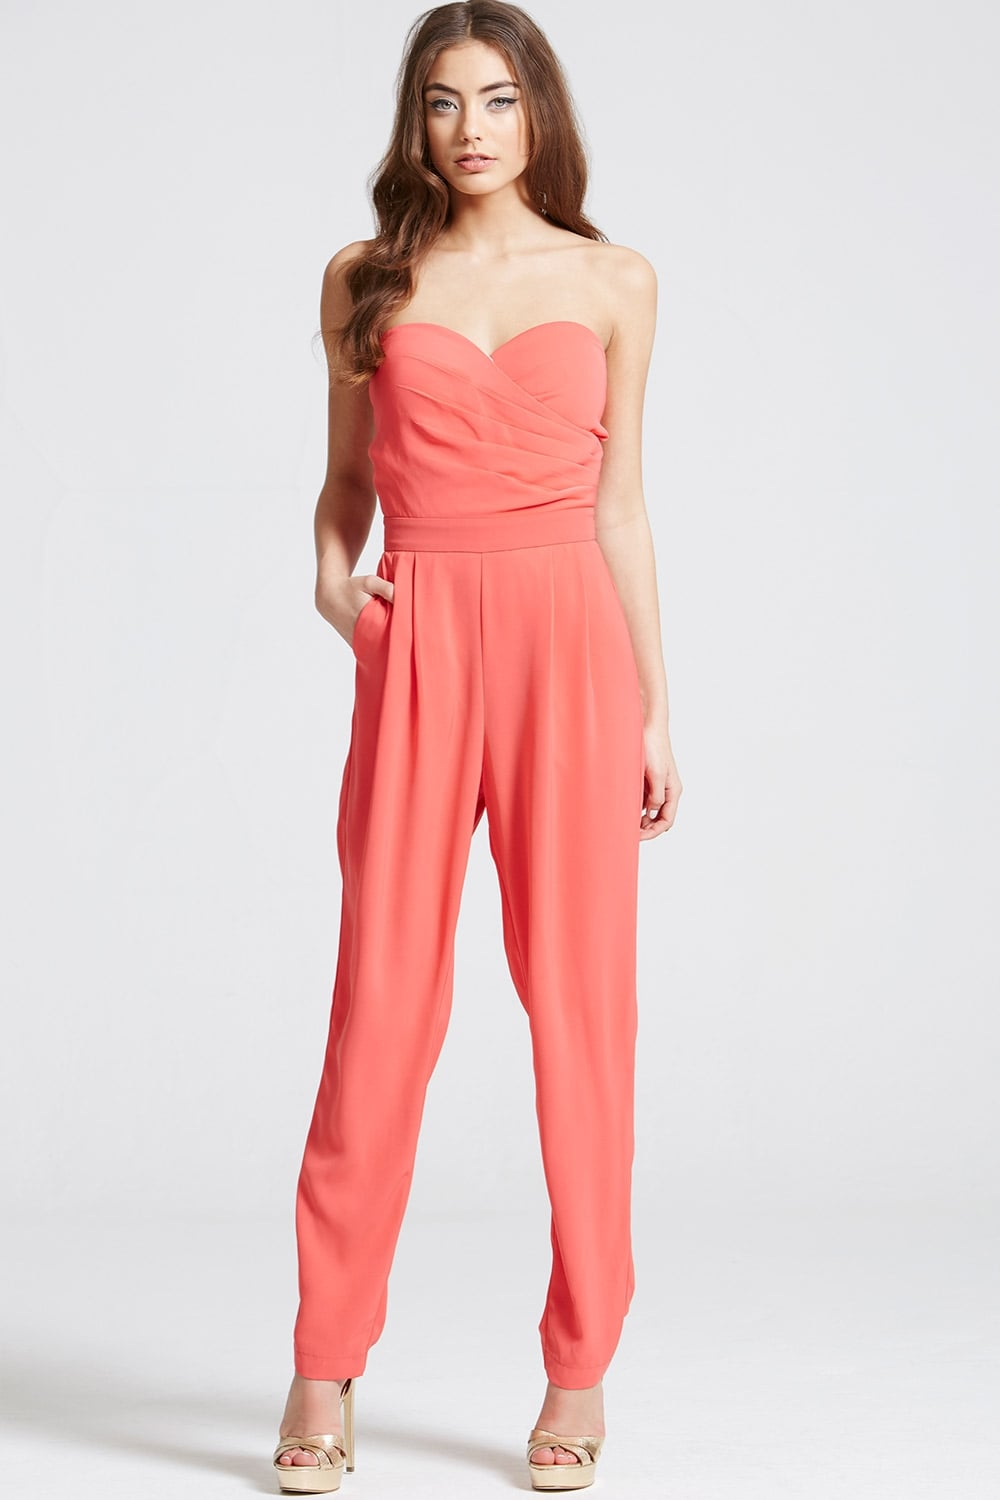 06a8d5a65f6a Outlet Girls On Film Coral Bandeau Jumpsuit - Outlet Girls On Film ...